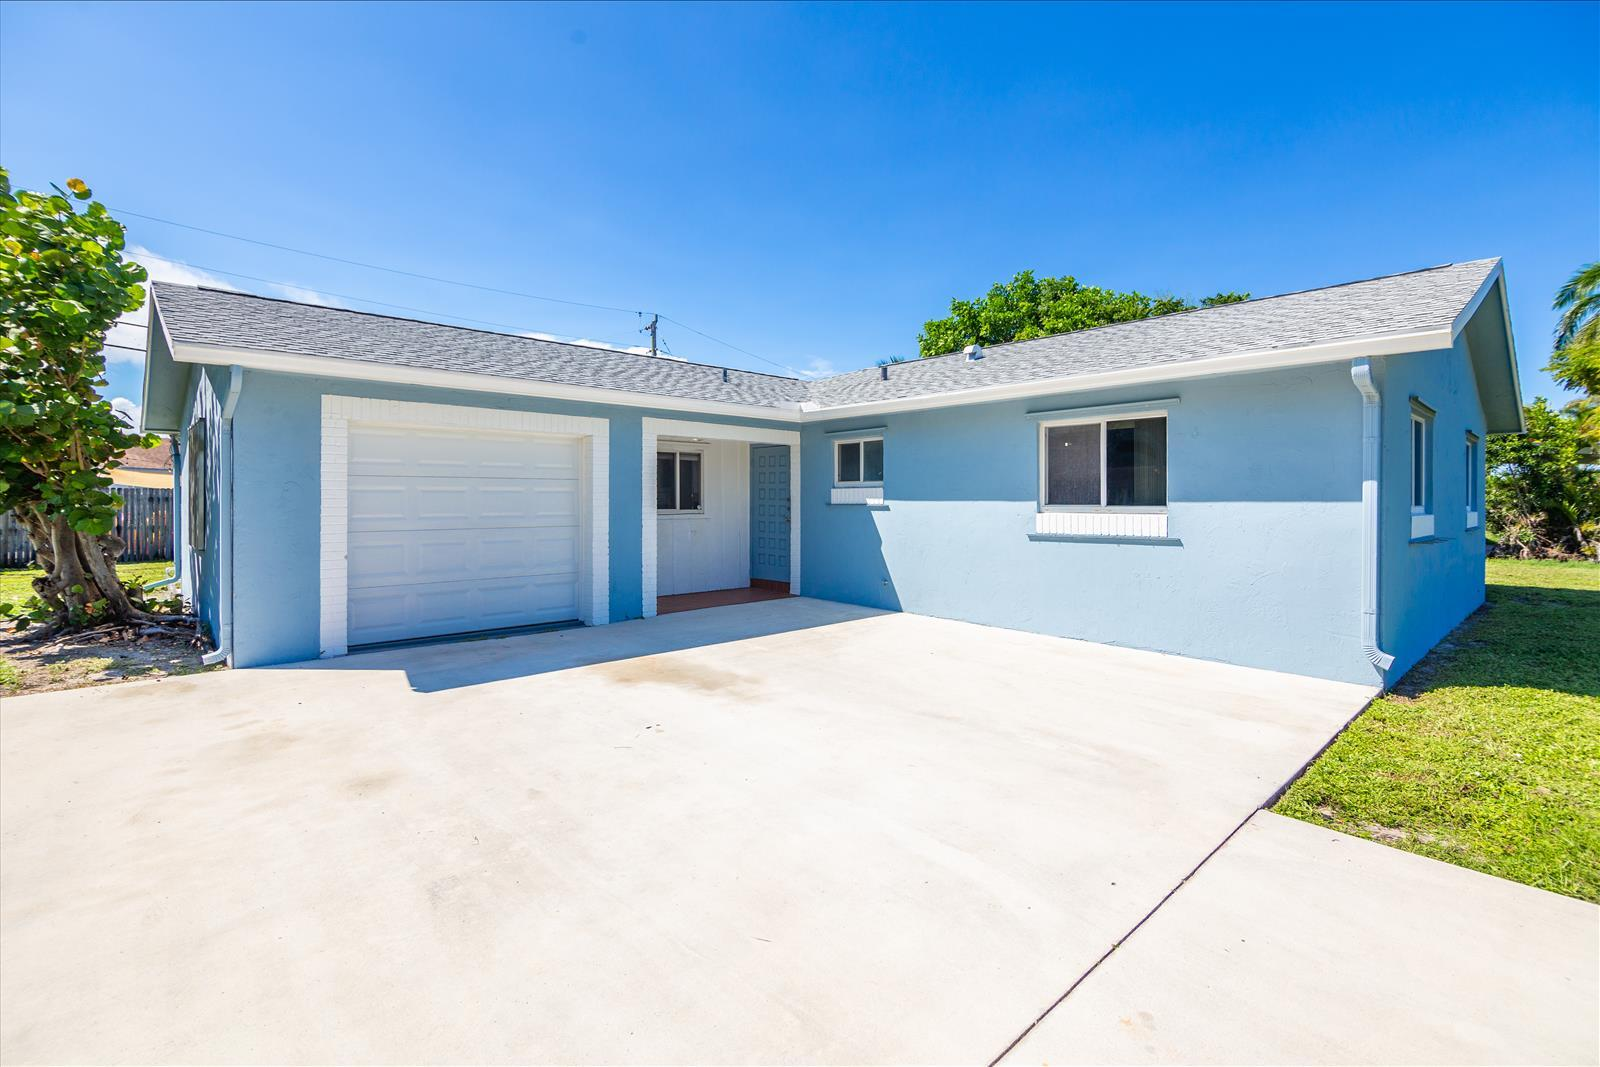 Home for sale in PALM SPRINGS VILLAGE PL 5 IN PB 25 PGS 85 TO 87 INC Palm Springs Florida